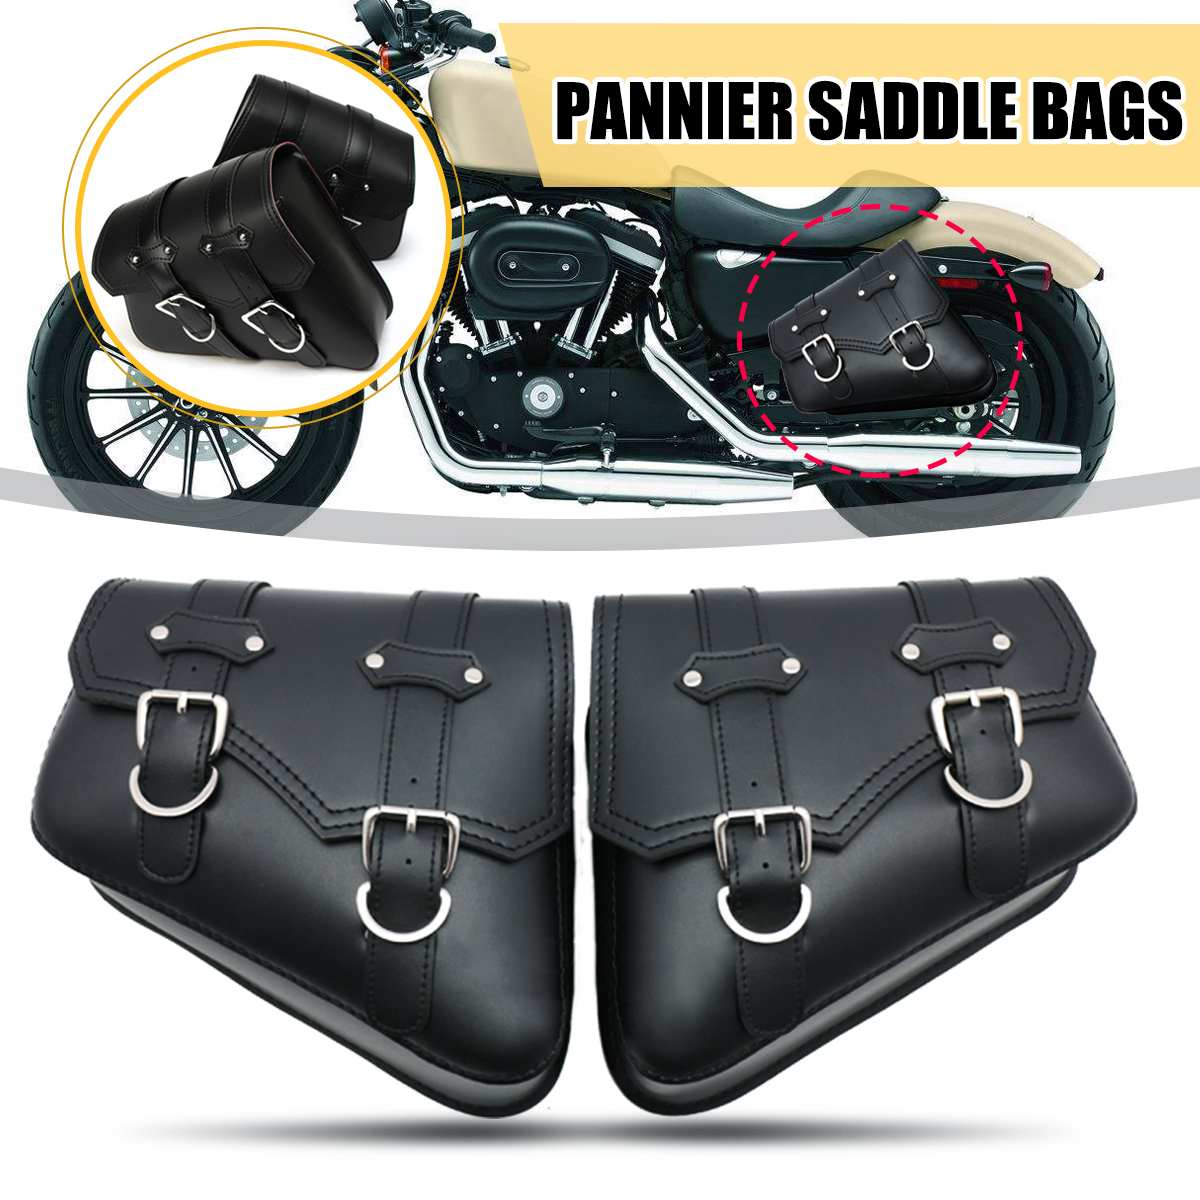 1 Pair Black Motorcycle Saddlebags Throw Under Seat Side Tools Bag Pouch for Harley Davidson Cruiser Motorbike image